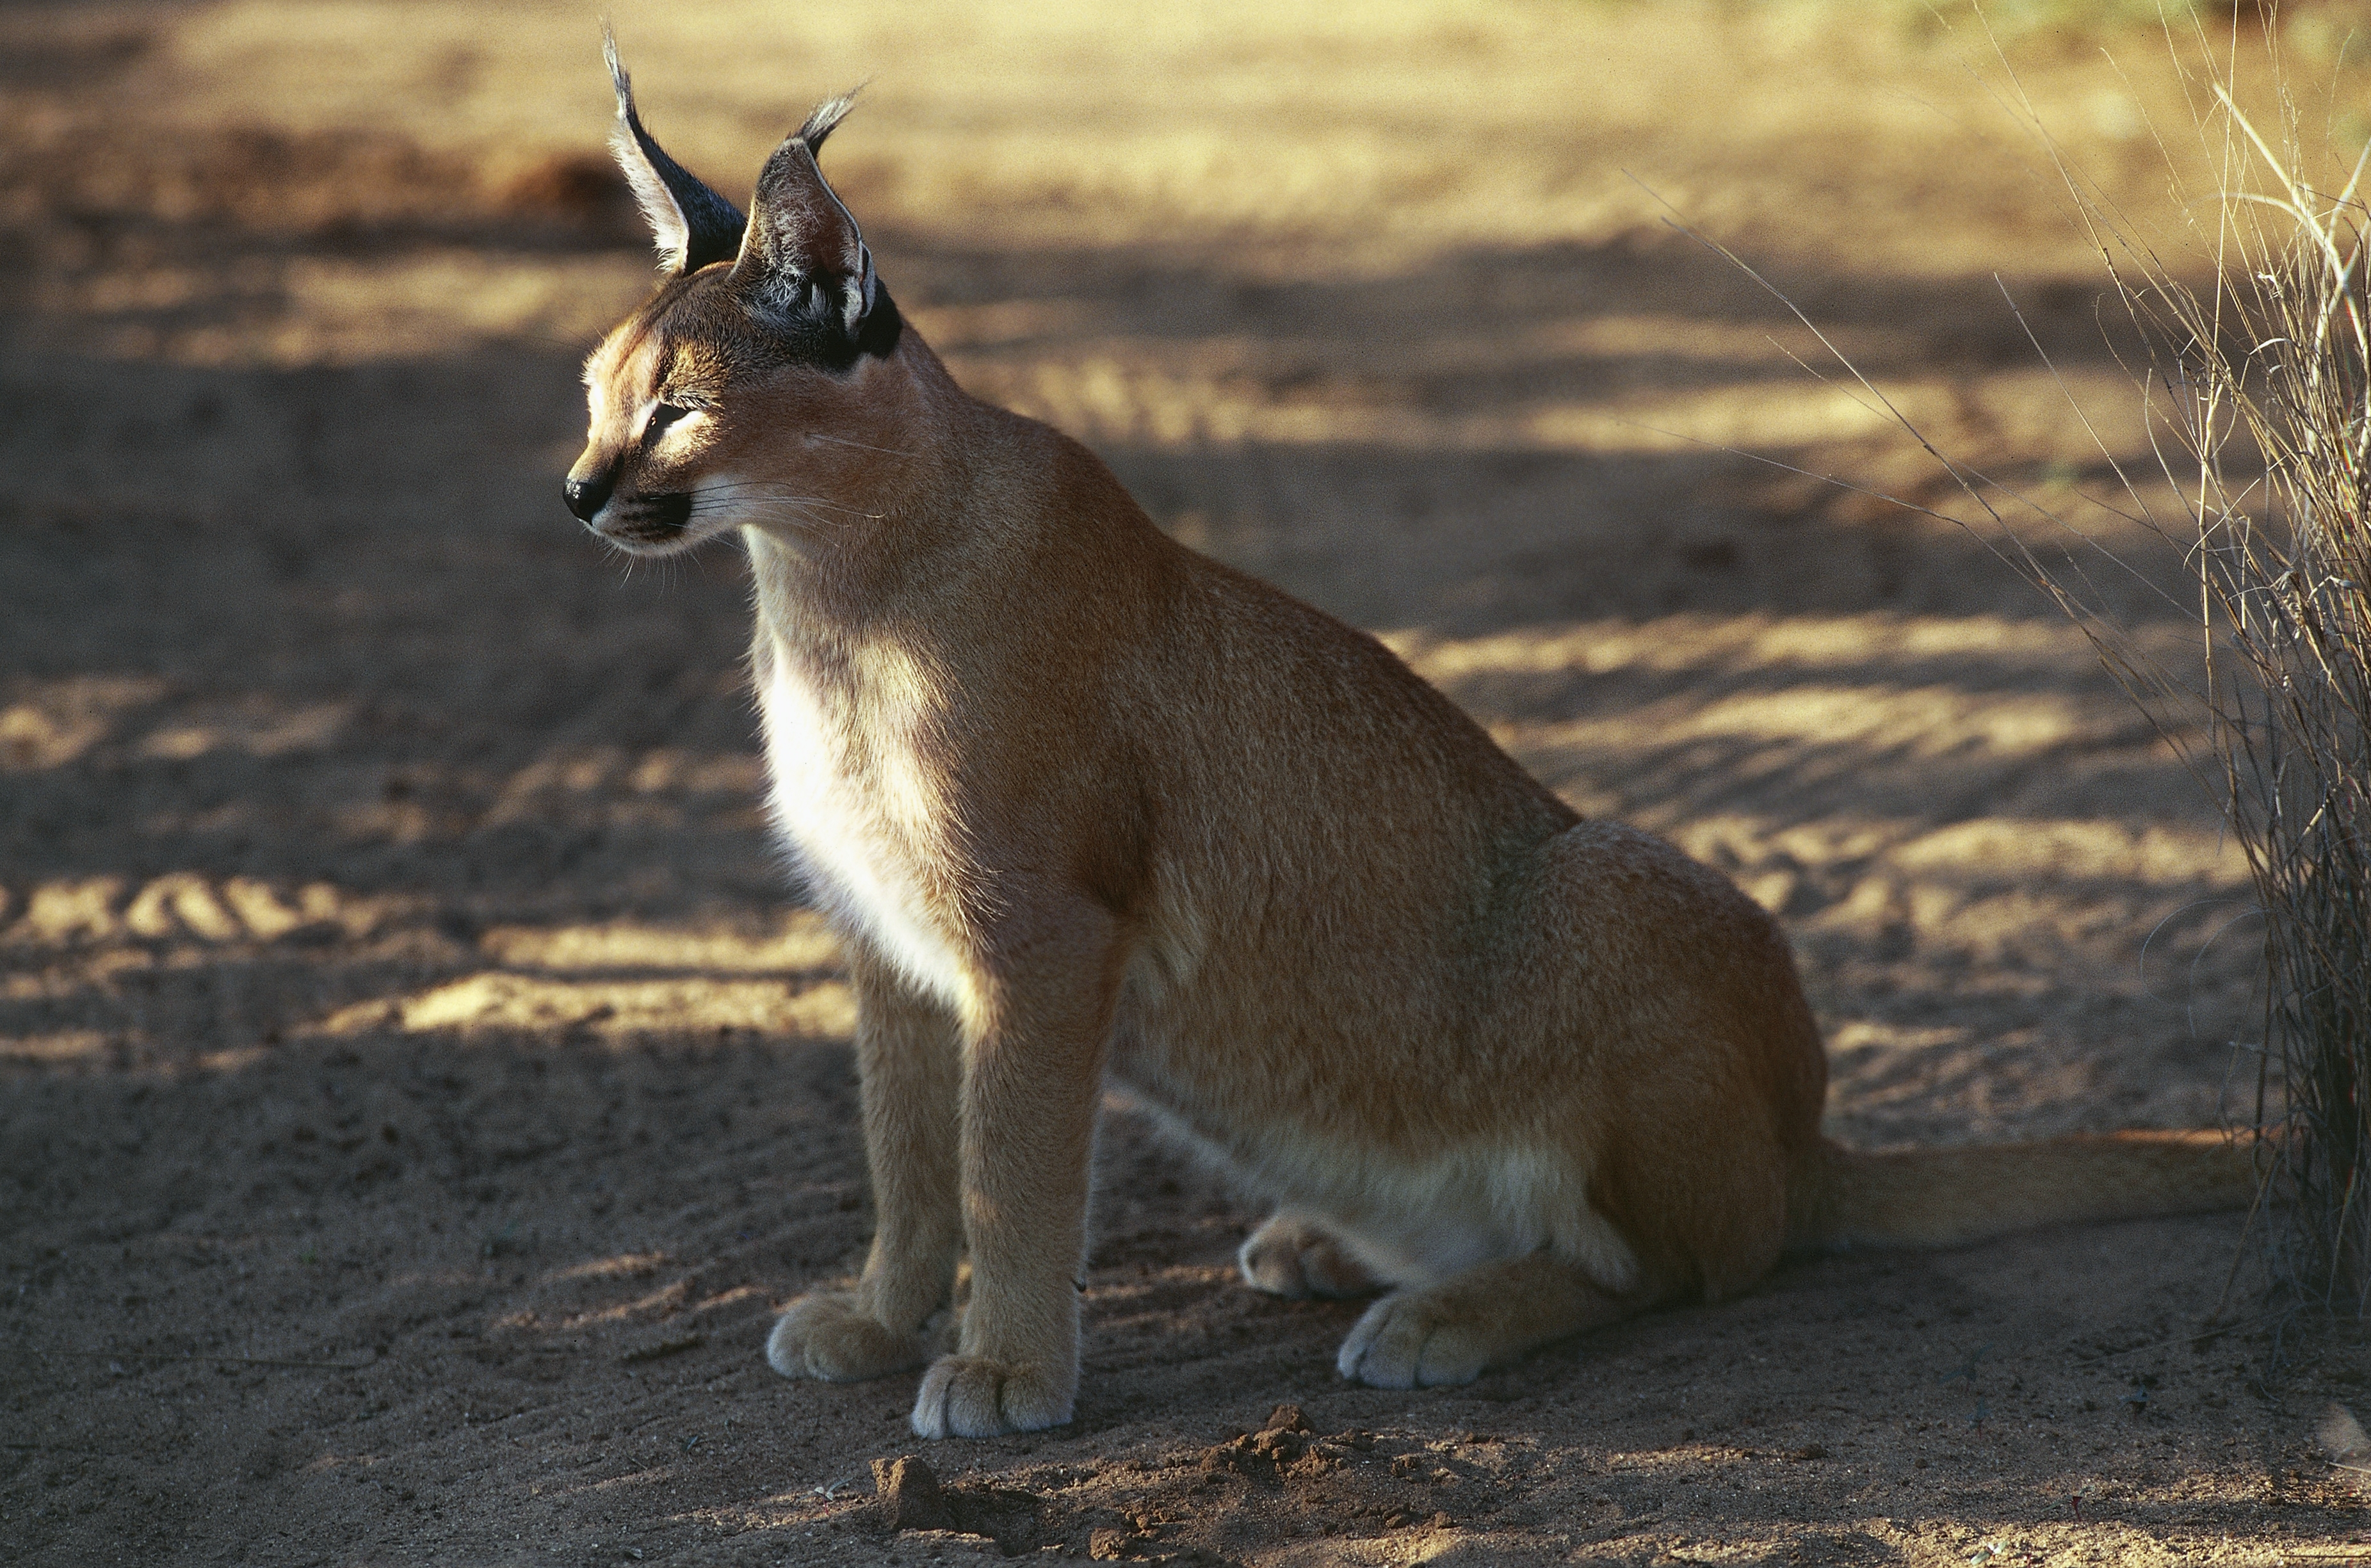 Caracal Image by DeAgostini/Getty Image)